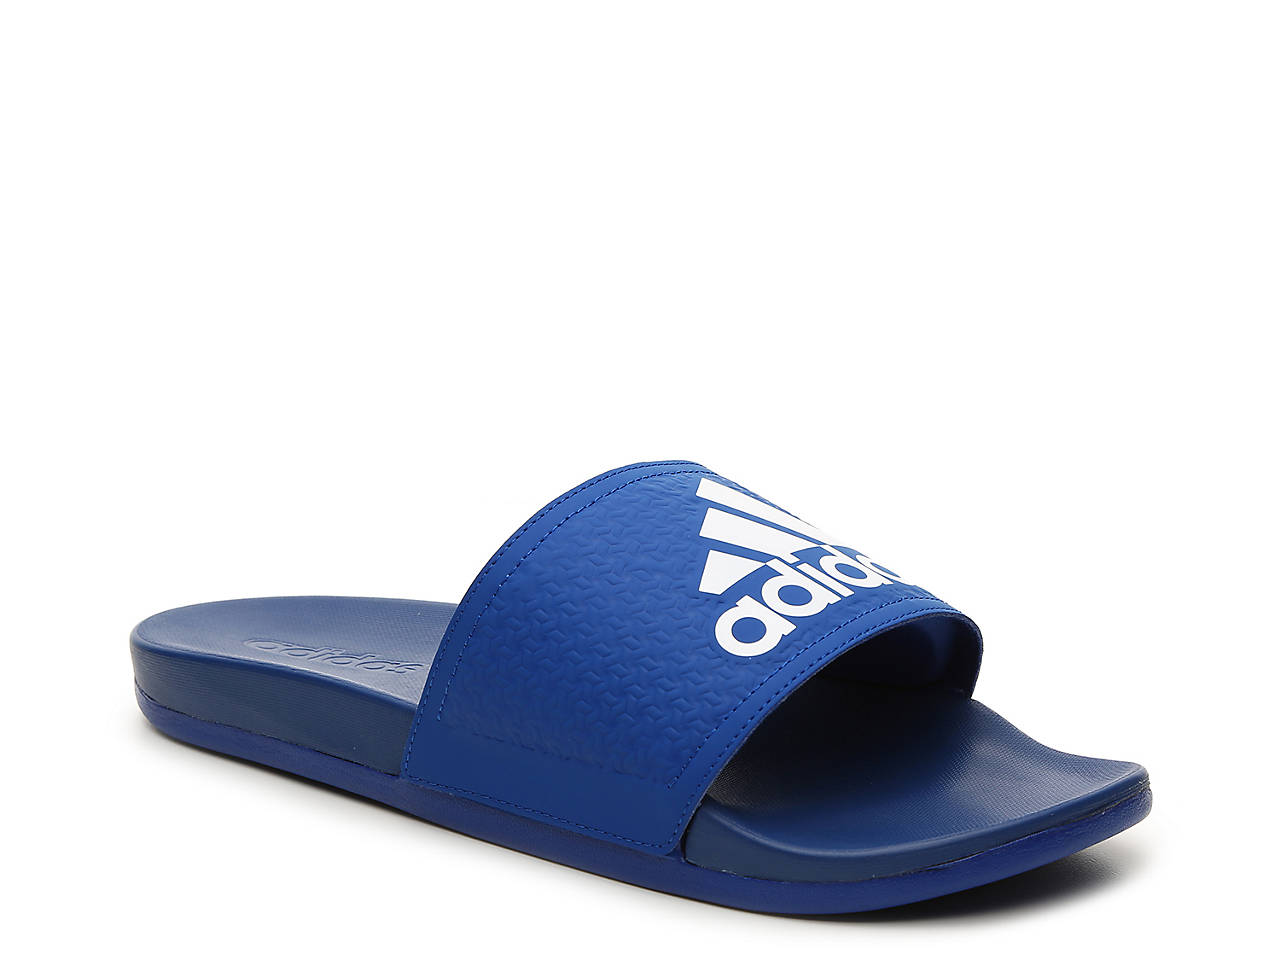 35df1f9851e0 adidas AdiLette Supercloud Plus Slide Sandal - Men s Men s Shoes